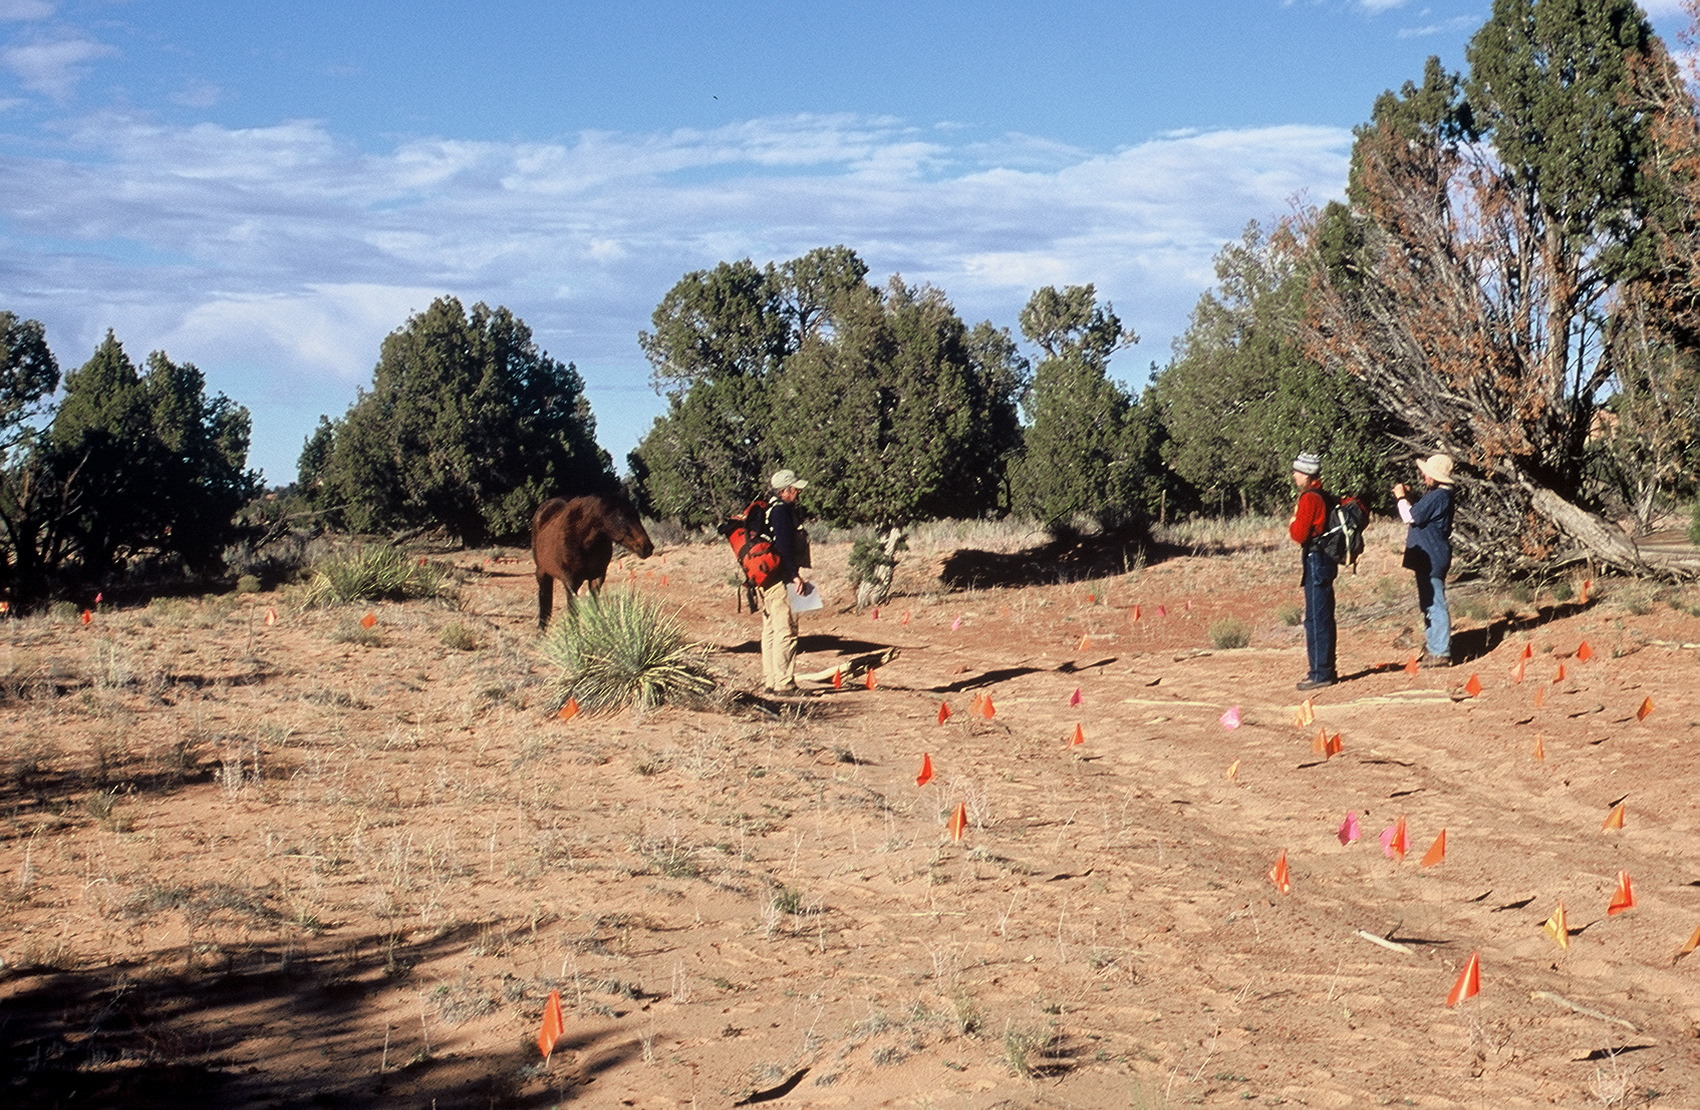 Survey team finds unprotected artifacts in the middle of a vehicle track. Photo/Jill Ozarski.